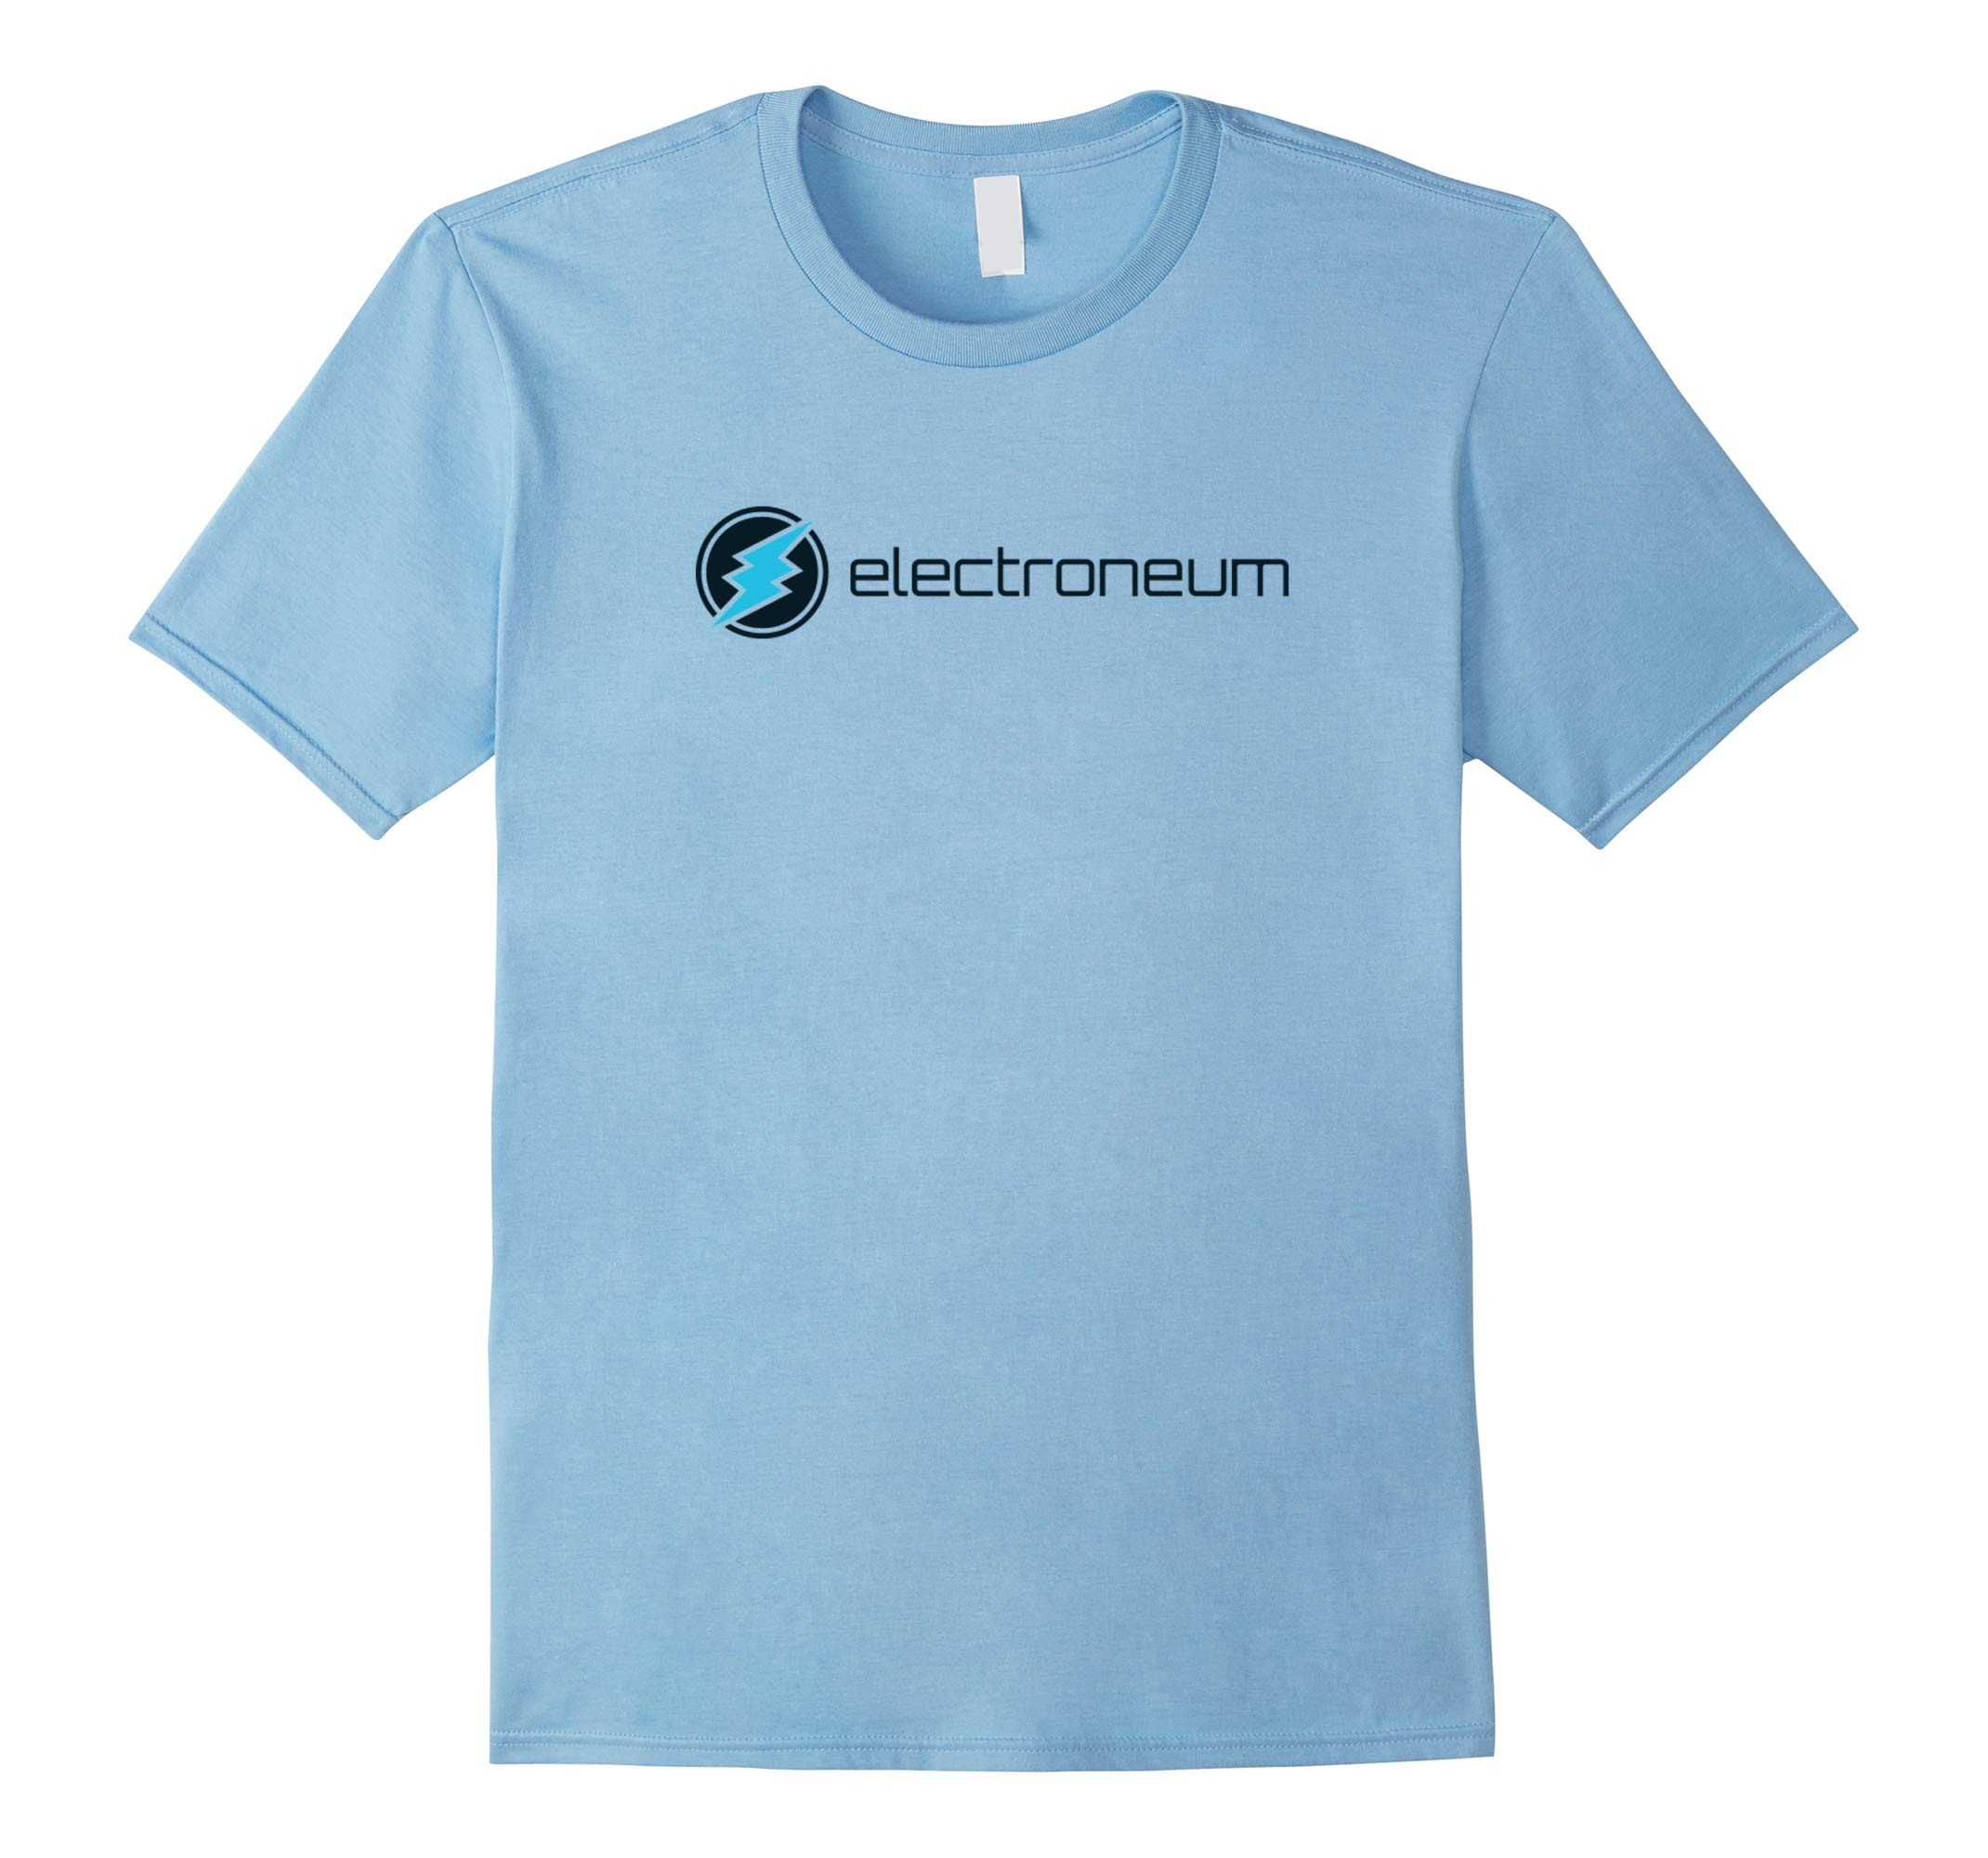 Electroneum ETN HODL Coin Cryptocurrency T-Shirt-RT